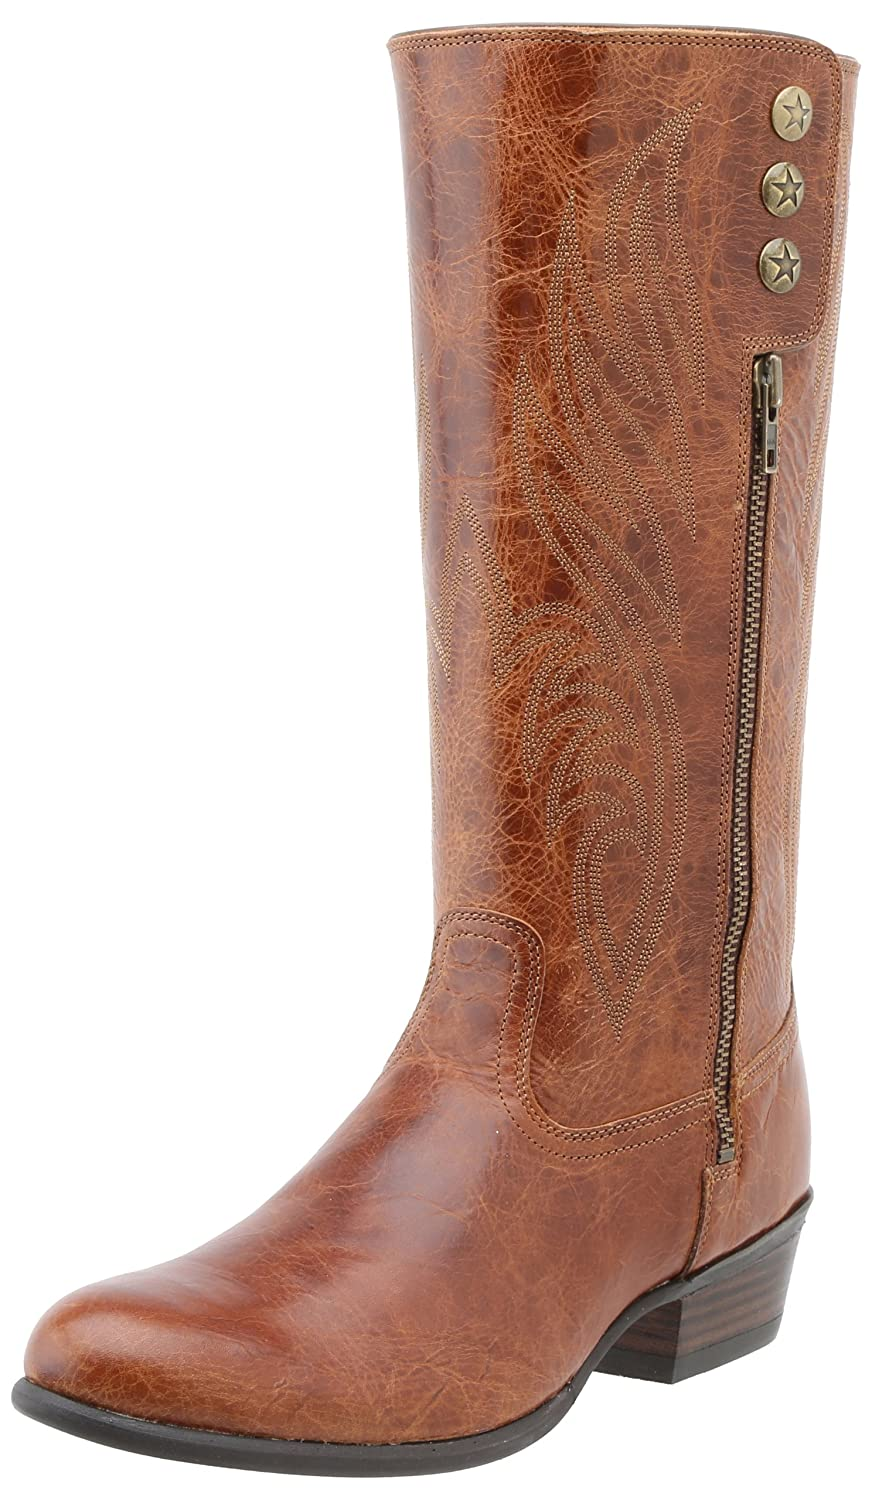 Is Ariat A Good Boot Brand - Boot Hto